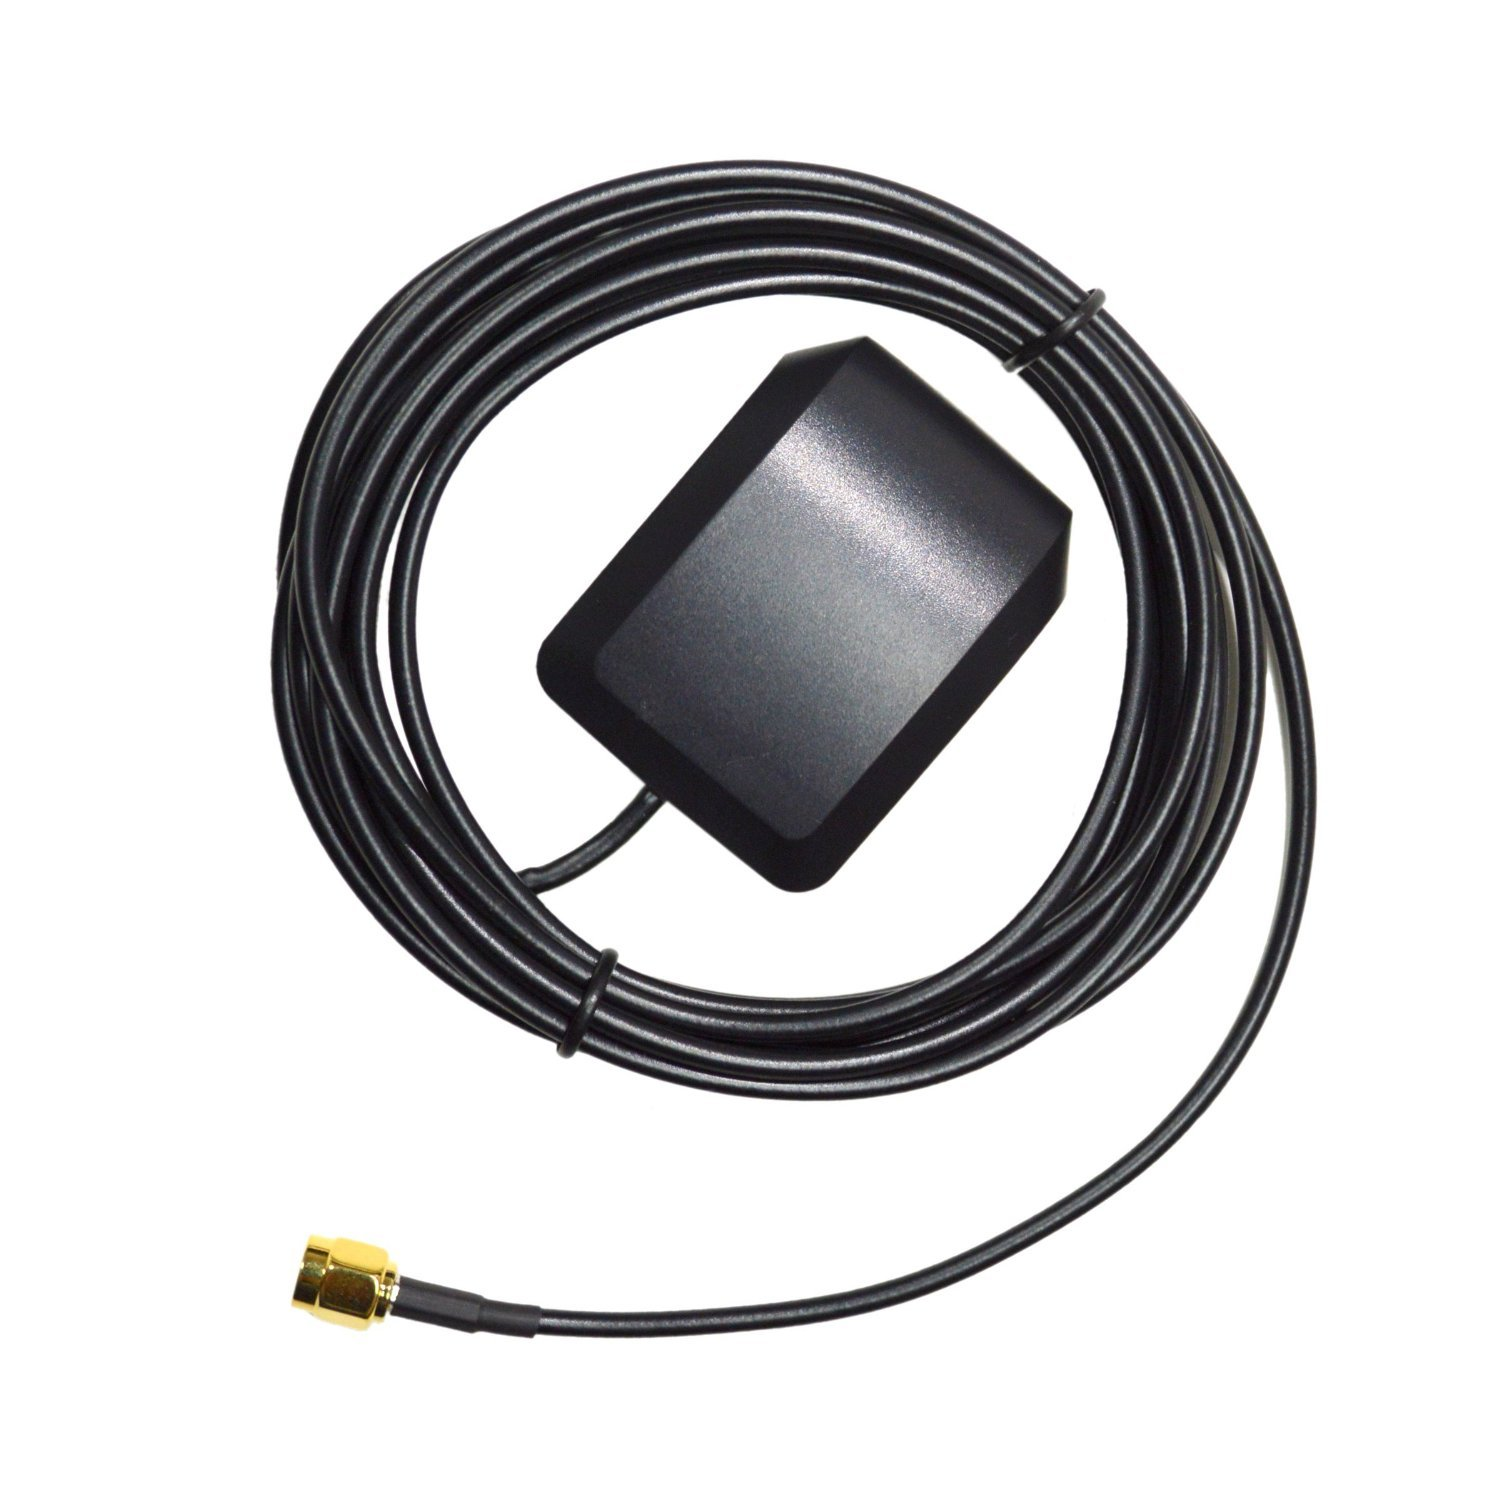 HQRP SMA Extension External GPS Antenna for Navman Tracker 5110 / 5380 / 5430 / 5500 / 5505 / 5600 / 5605 Antenna Replacement + HQRP UV Meter 884667806101509